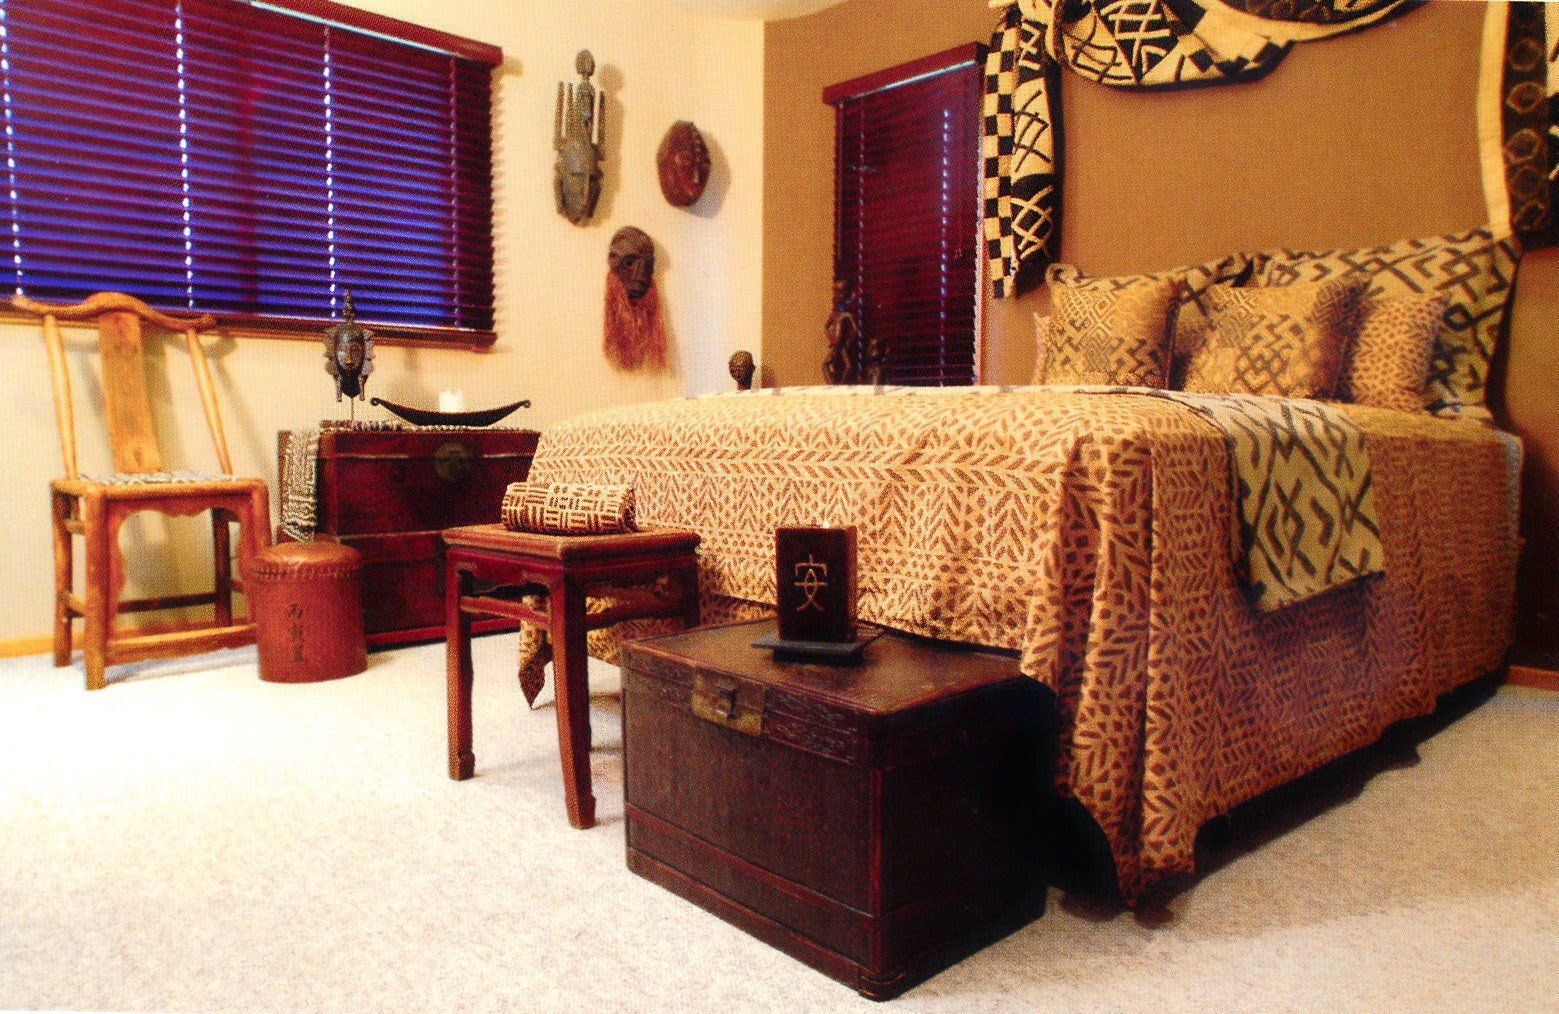 Foundation dezin decor bedroom design in african way for Lounge decor ideas pictures